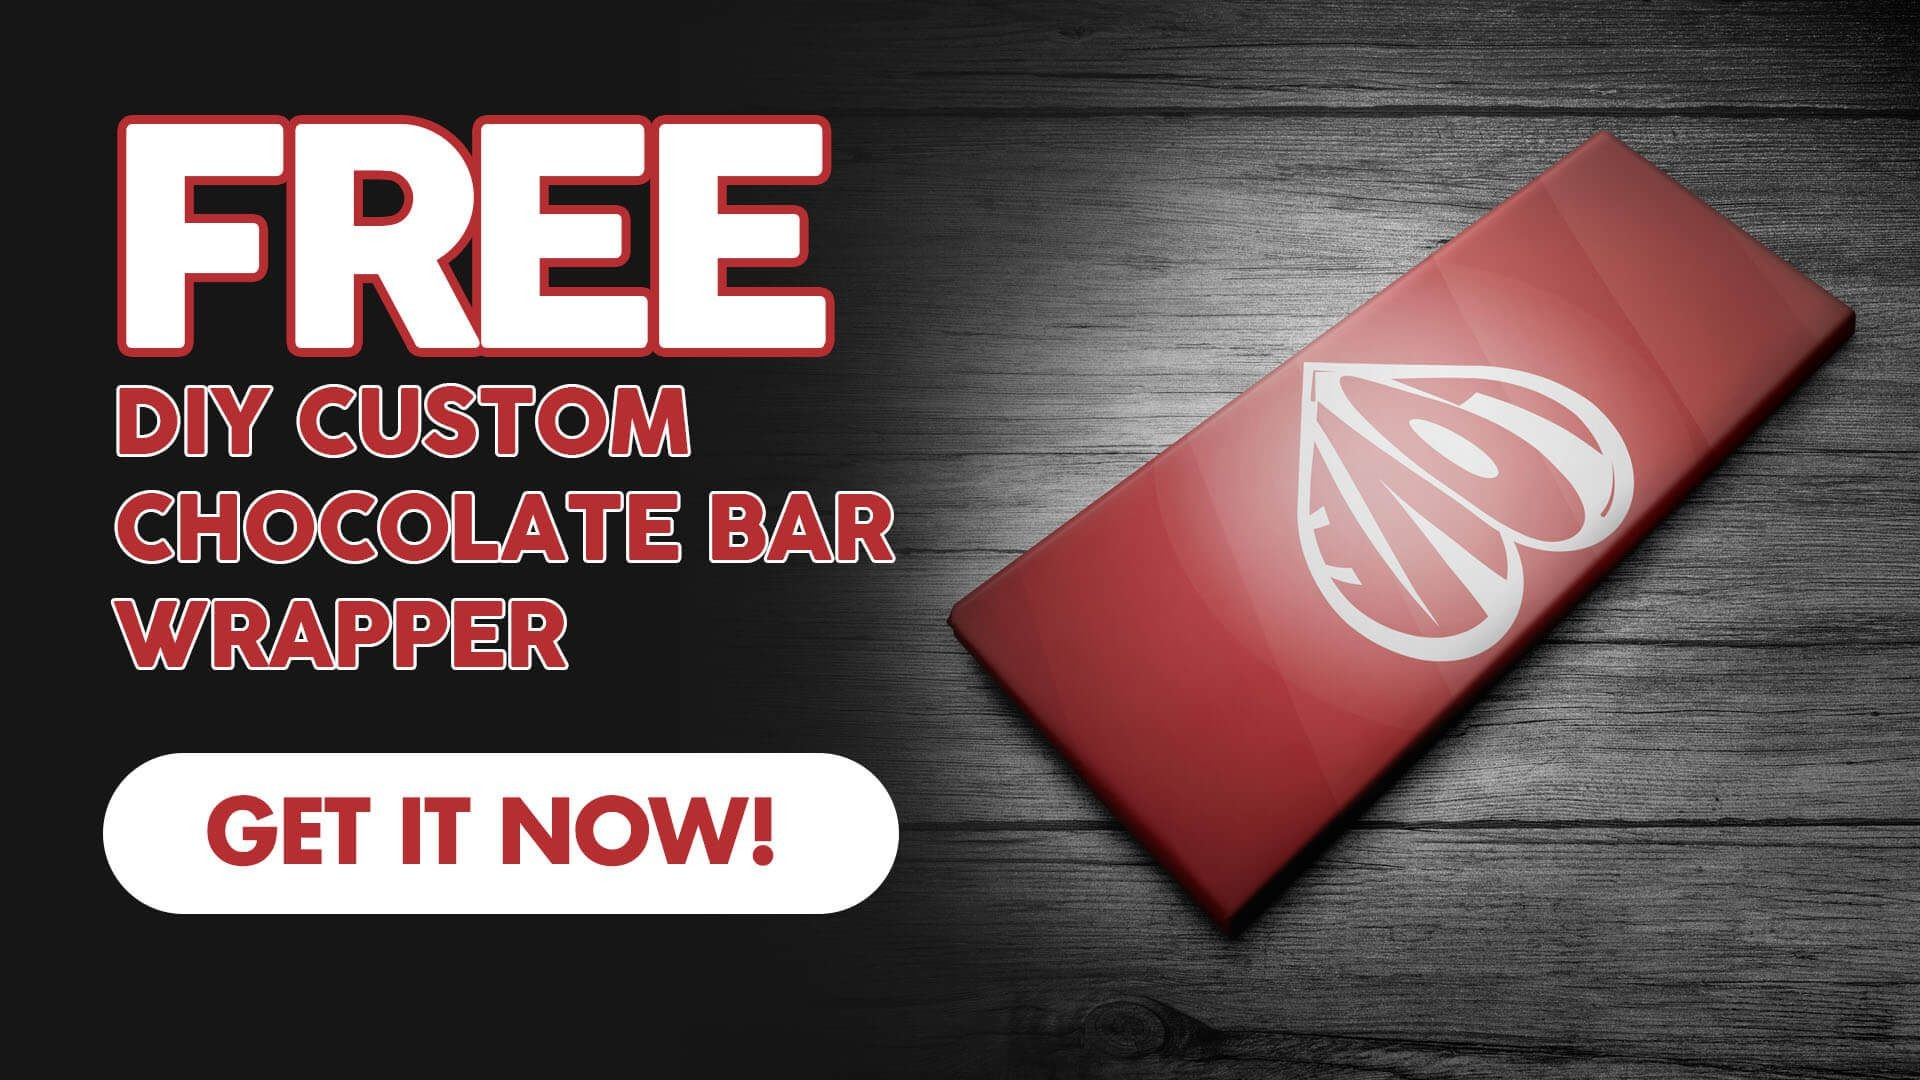 006 Remarkable Free Candy Bar Wrapper Template Pdf Highest Quality 1920